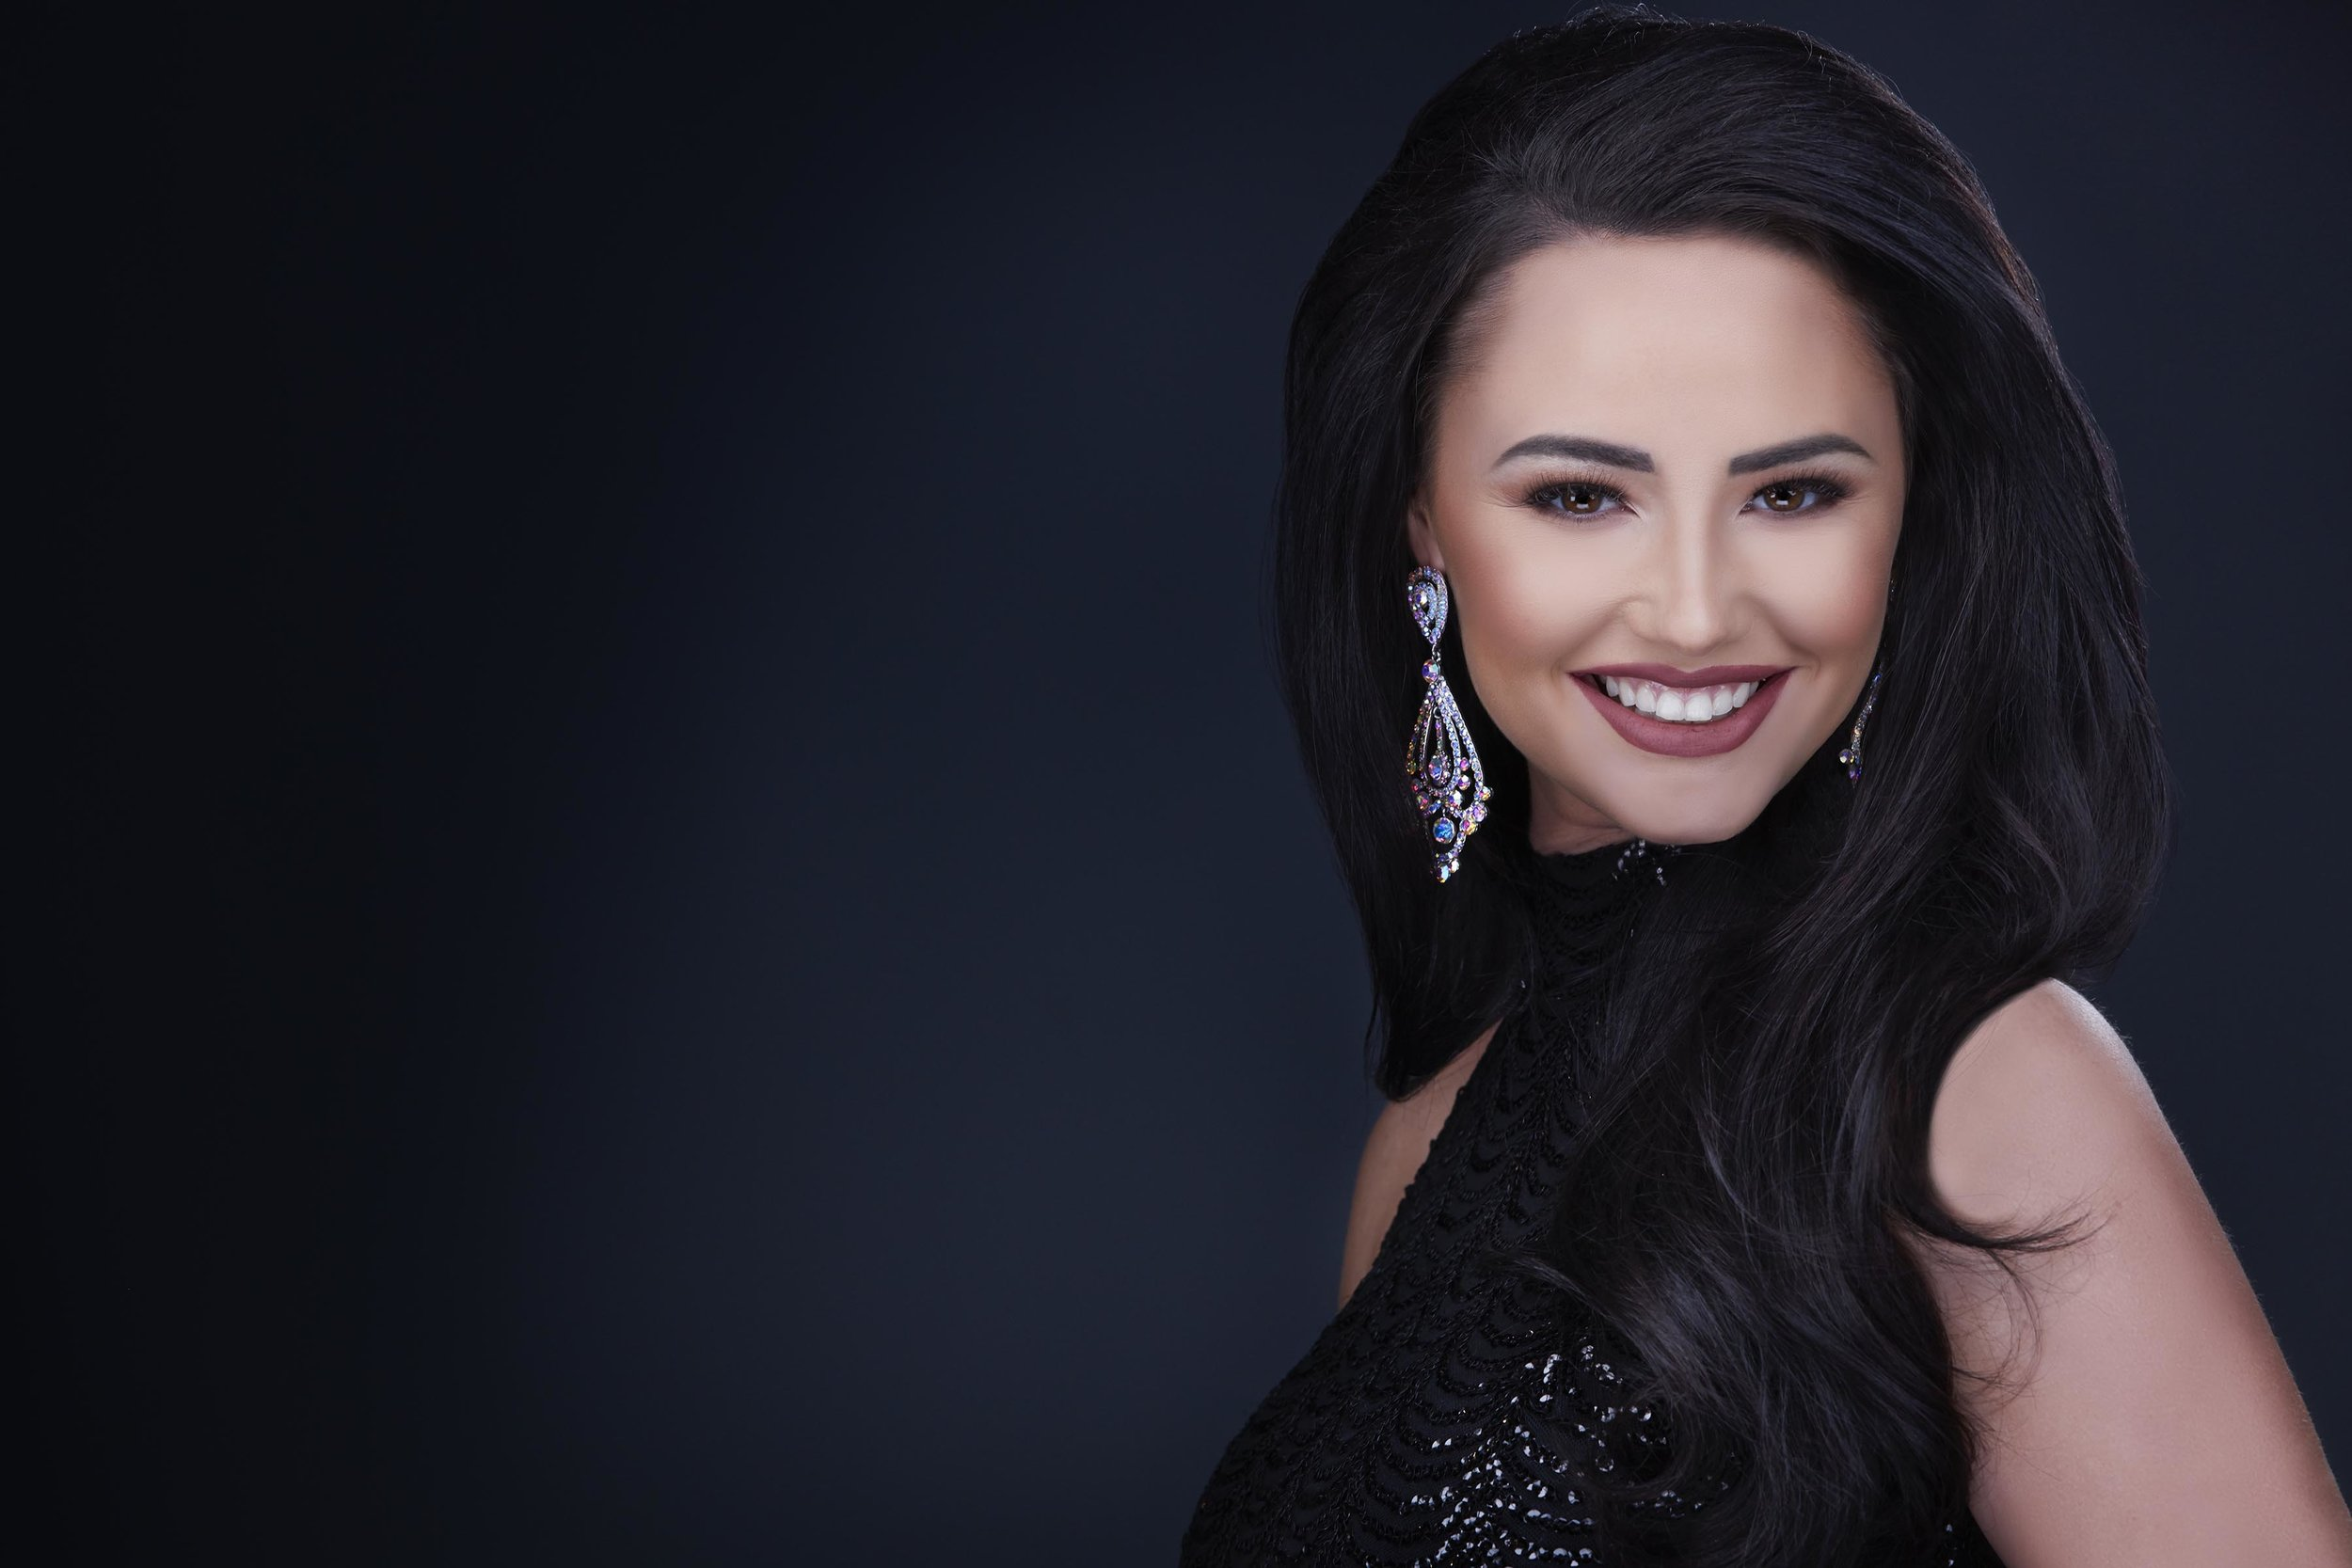 pageant-headshots-central-arkansas-photography-jodie-kelly.jpg